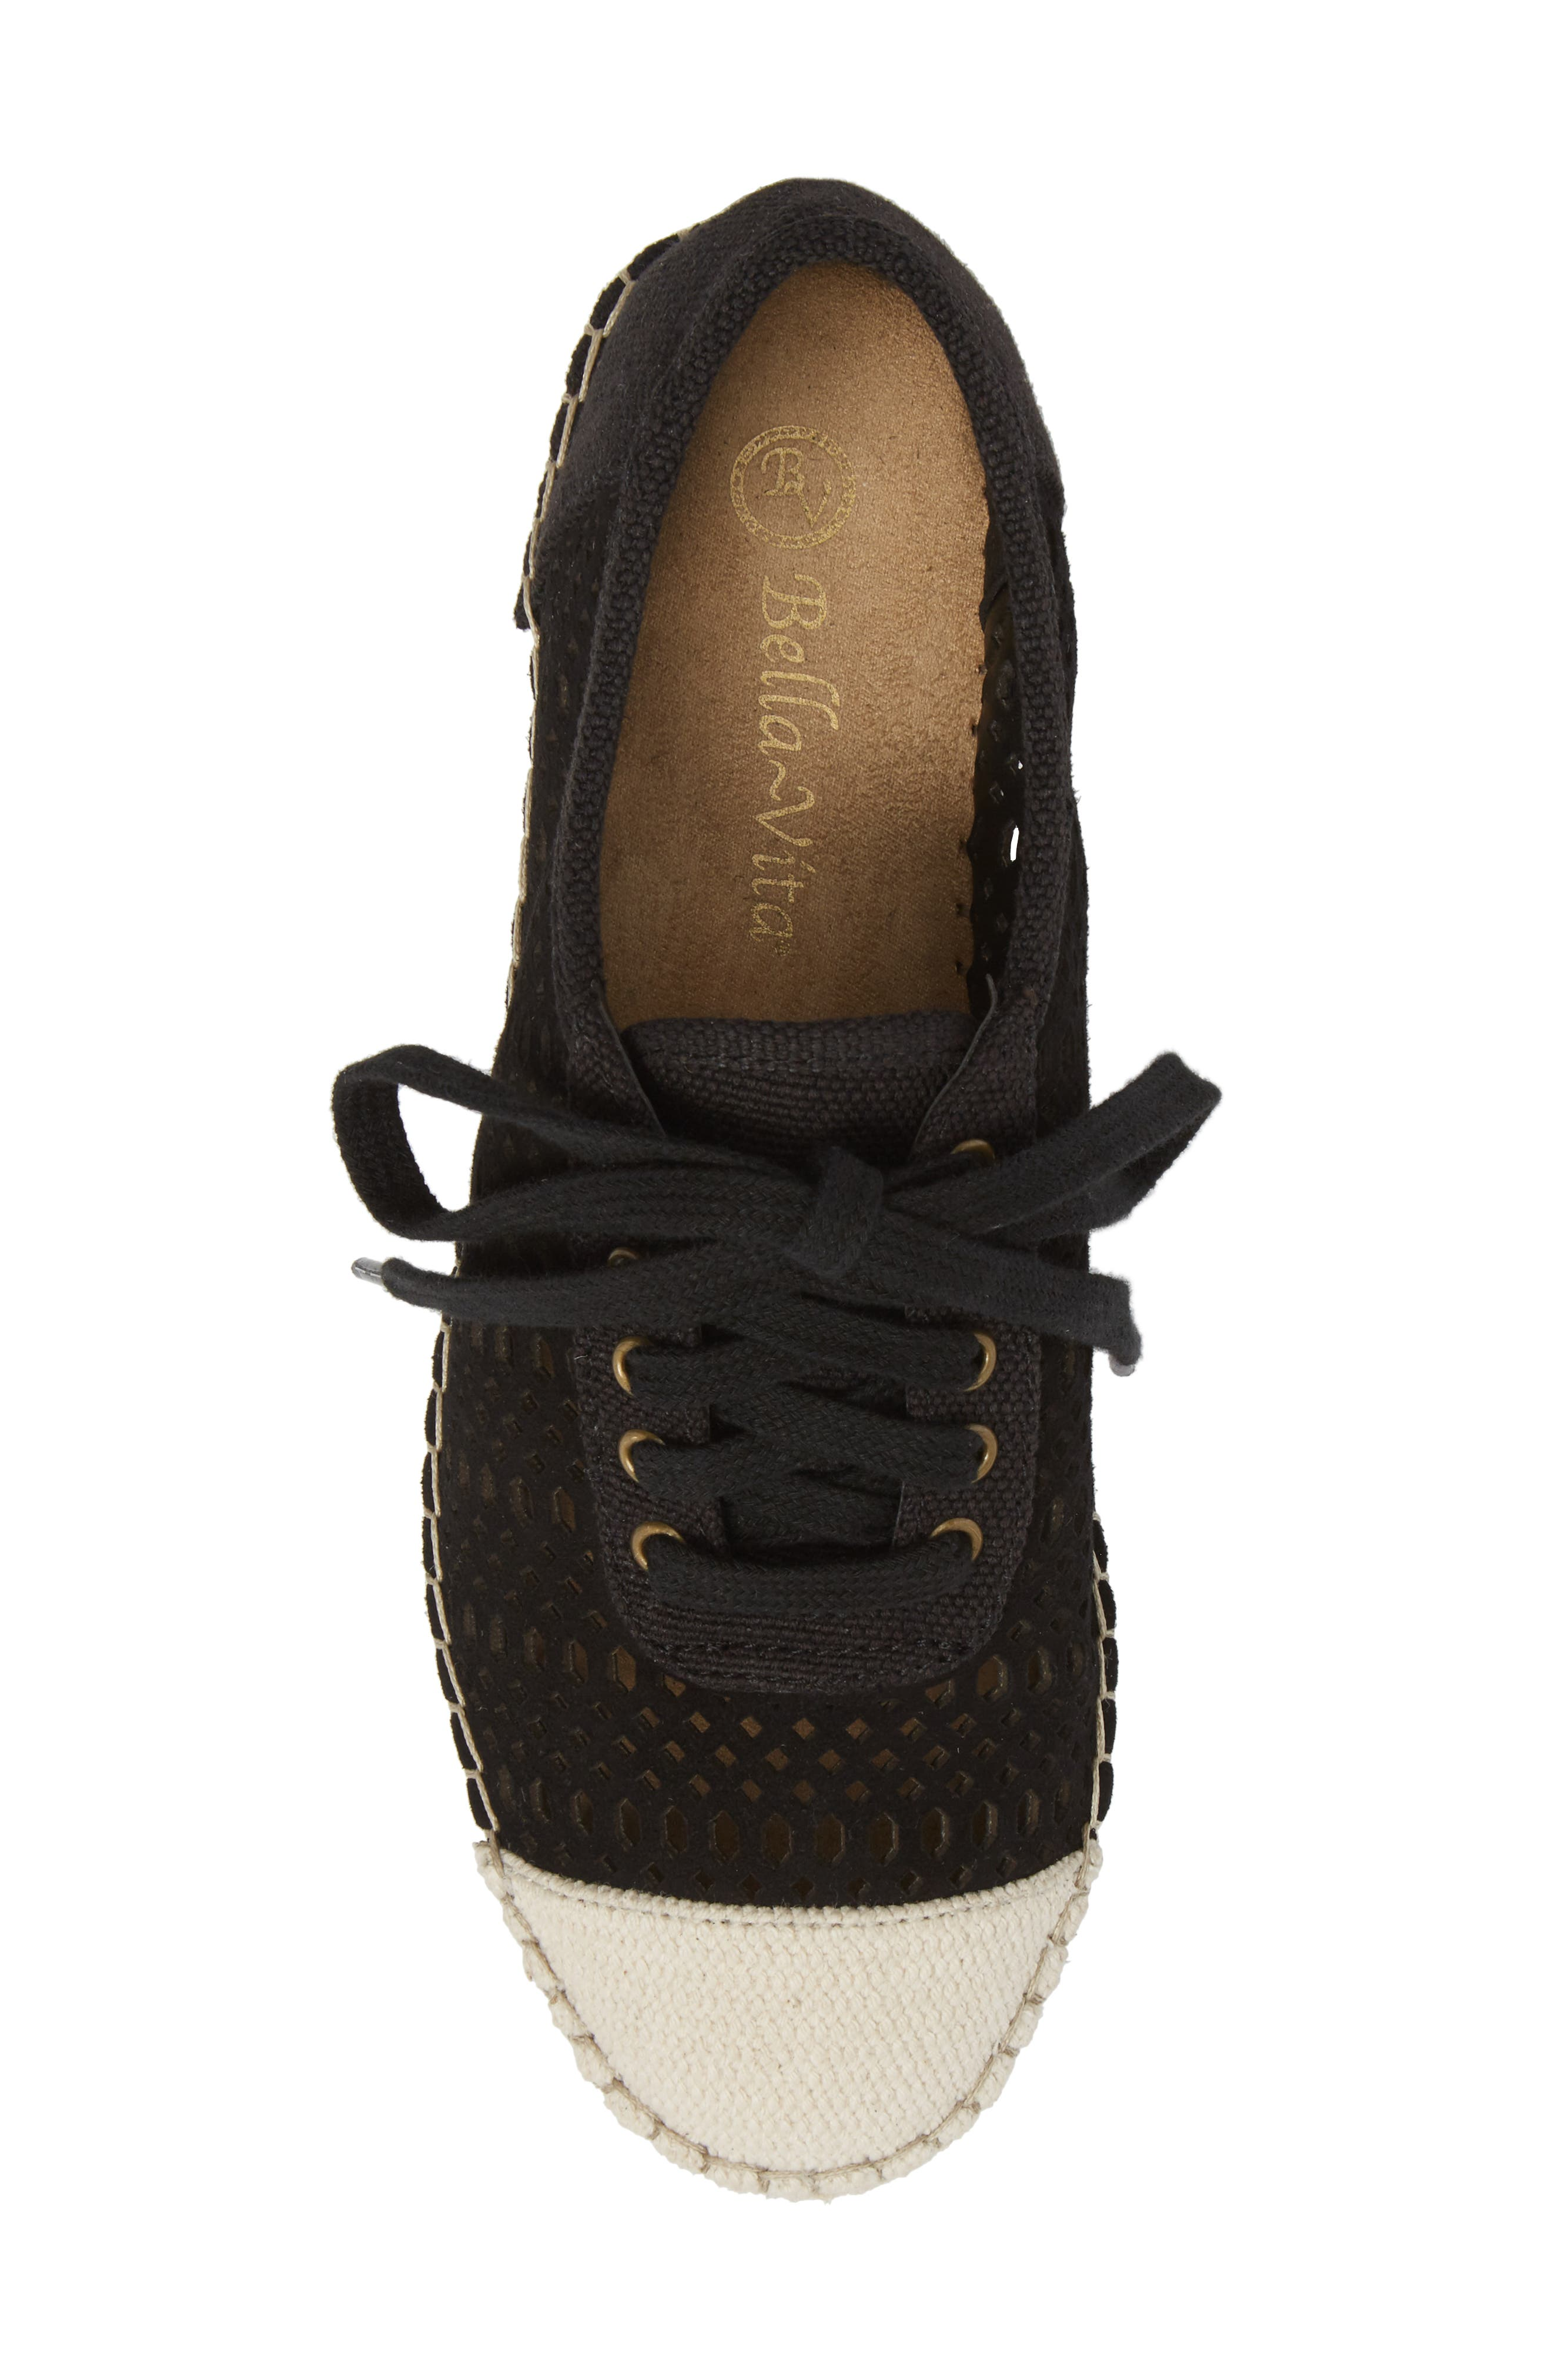 Clementine Espadrille Sneaker,                             Alternate thumbnail 5, color,                             018